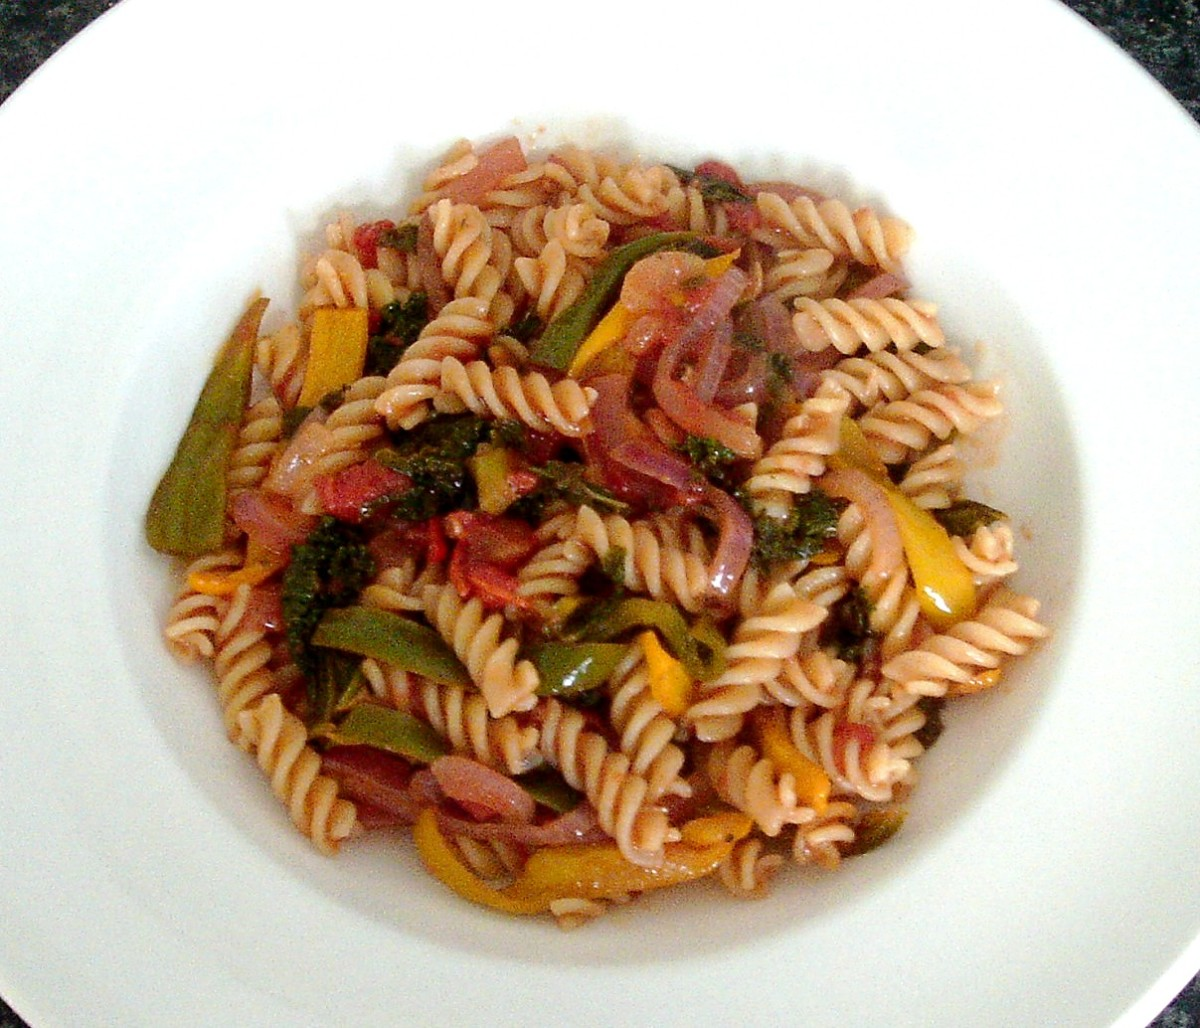 Kale and mixed vegetables fusilli pasta